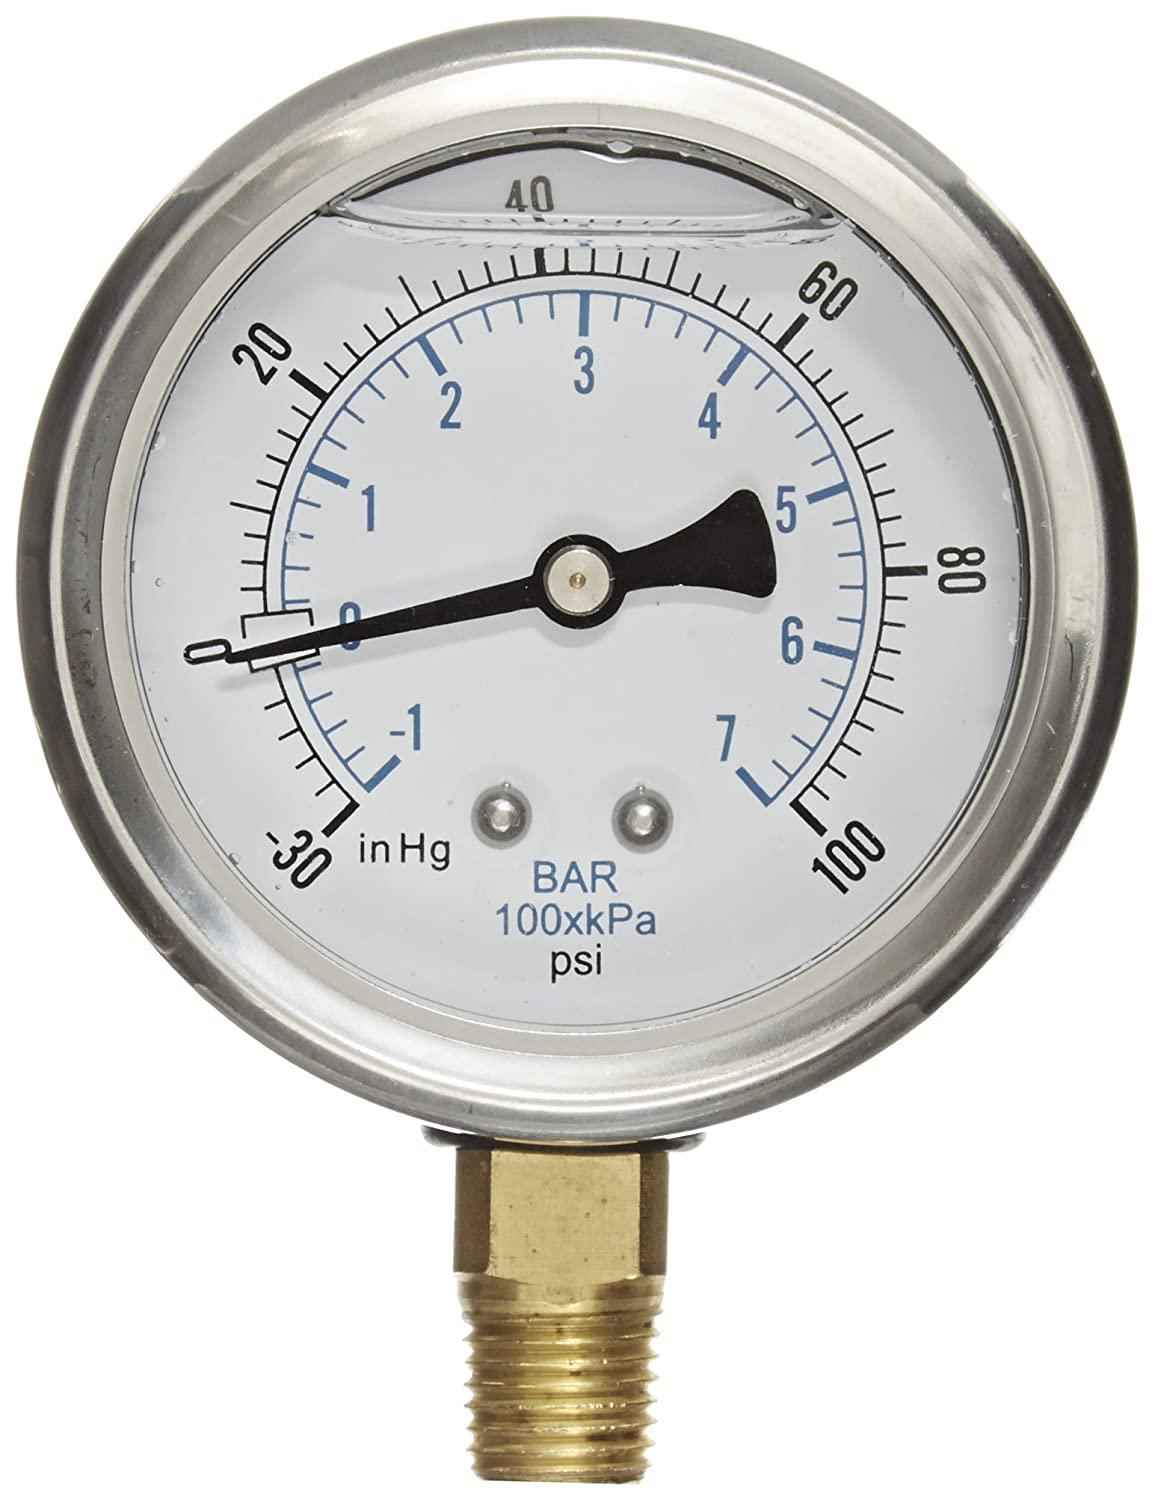 PIC Gauge PRO 201L 254CE Glycerin Filled Industrial Bottom Mount Pressure Gauge with Stainless Steel Case Brass Internals Plastic Lens 2 1 2 Dial Size 1 4 Male NPT 30 0 100 psi